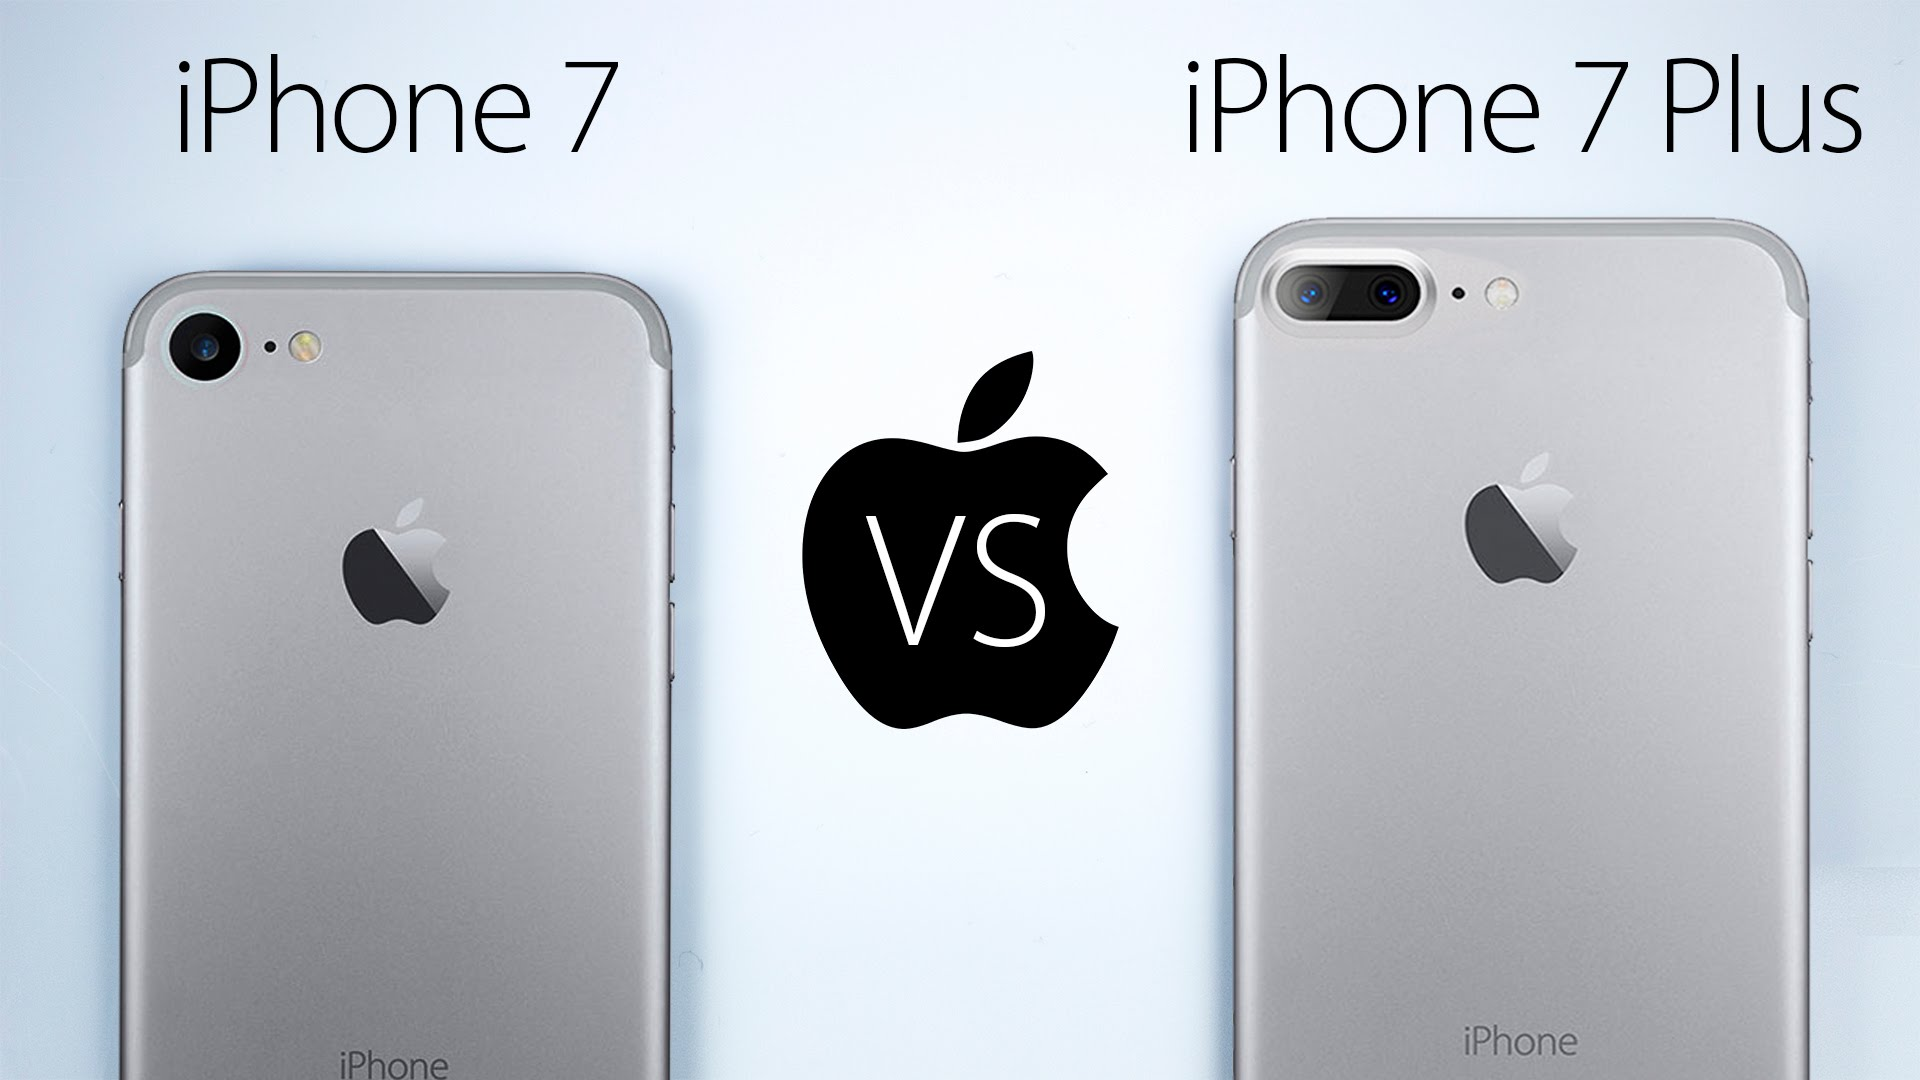 Iphone vs iphone 7